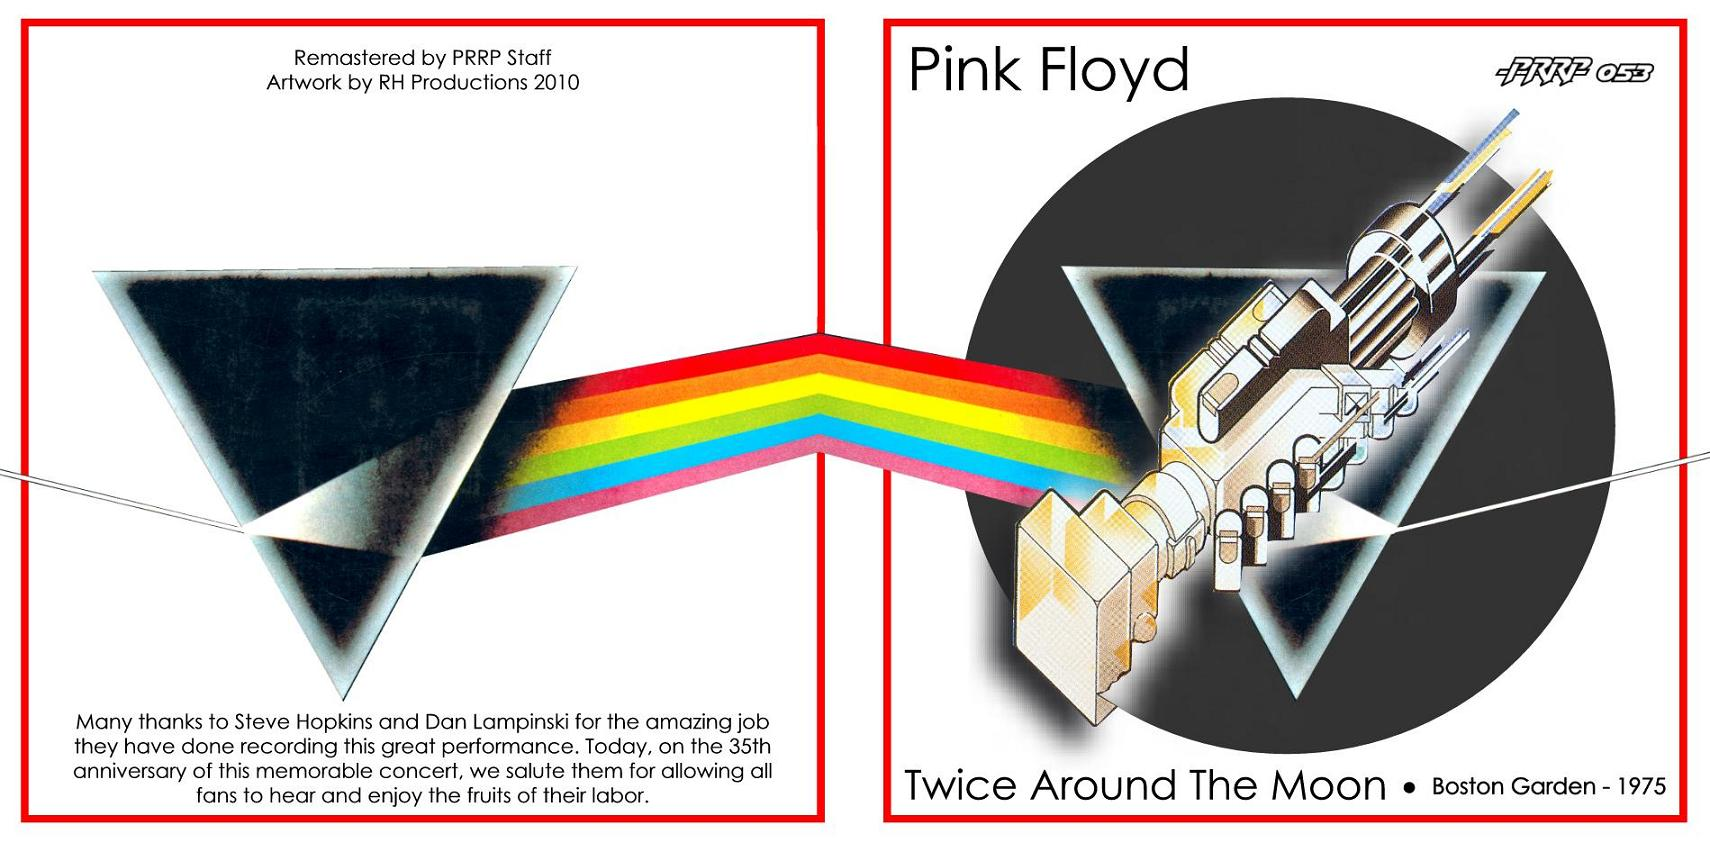 1975-06-18-Twice_around_the_moon-Booklet Cover